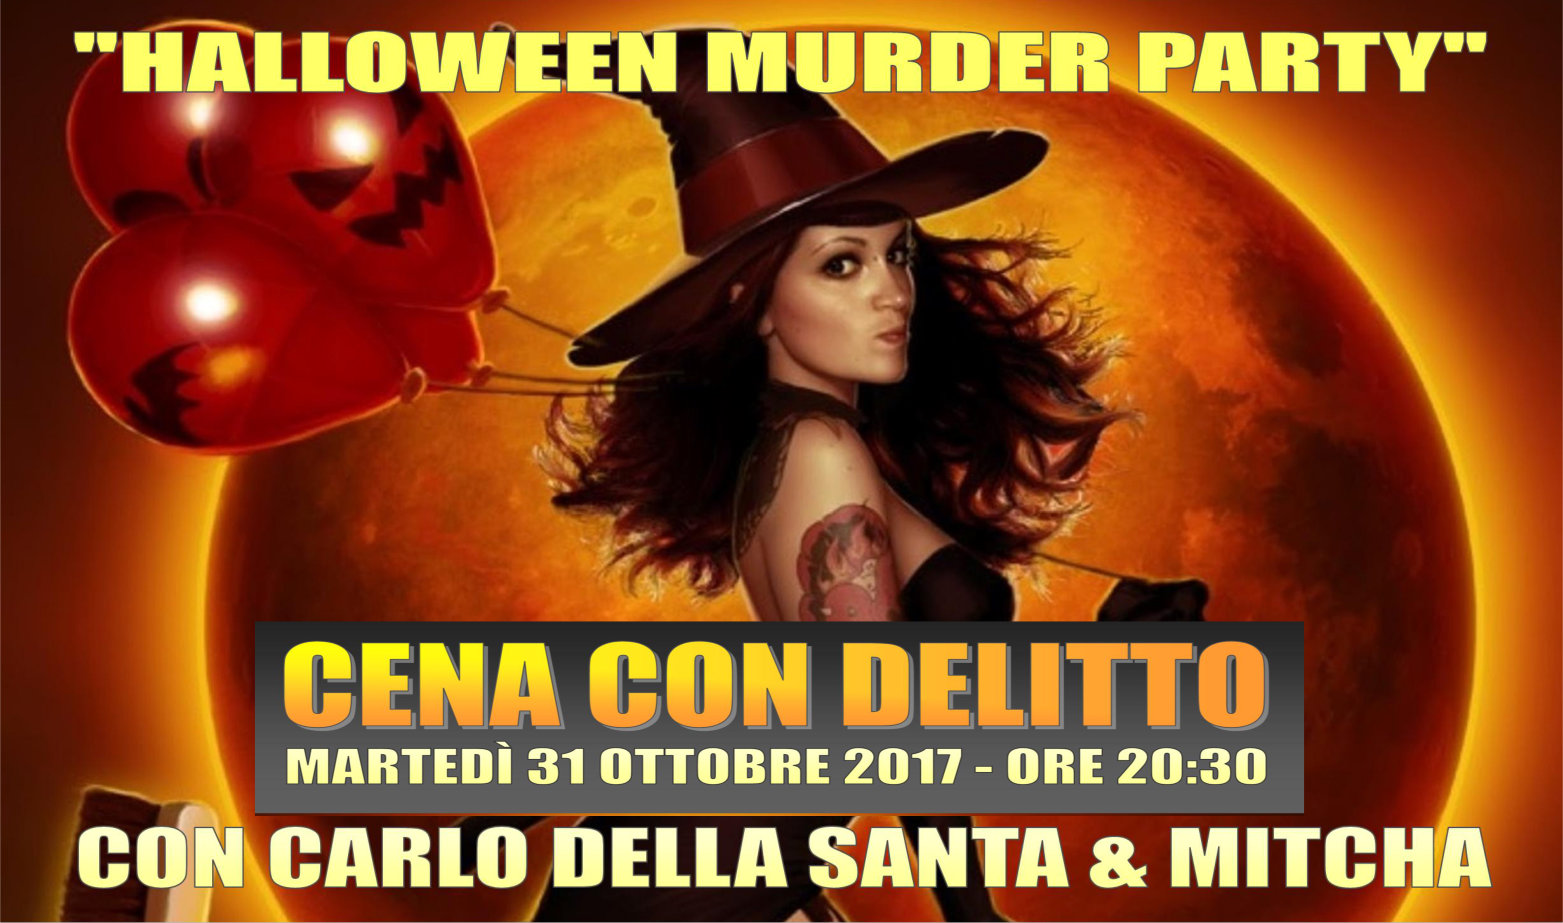 Halloween Murder Party (cena con delitto)